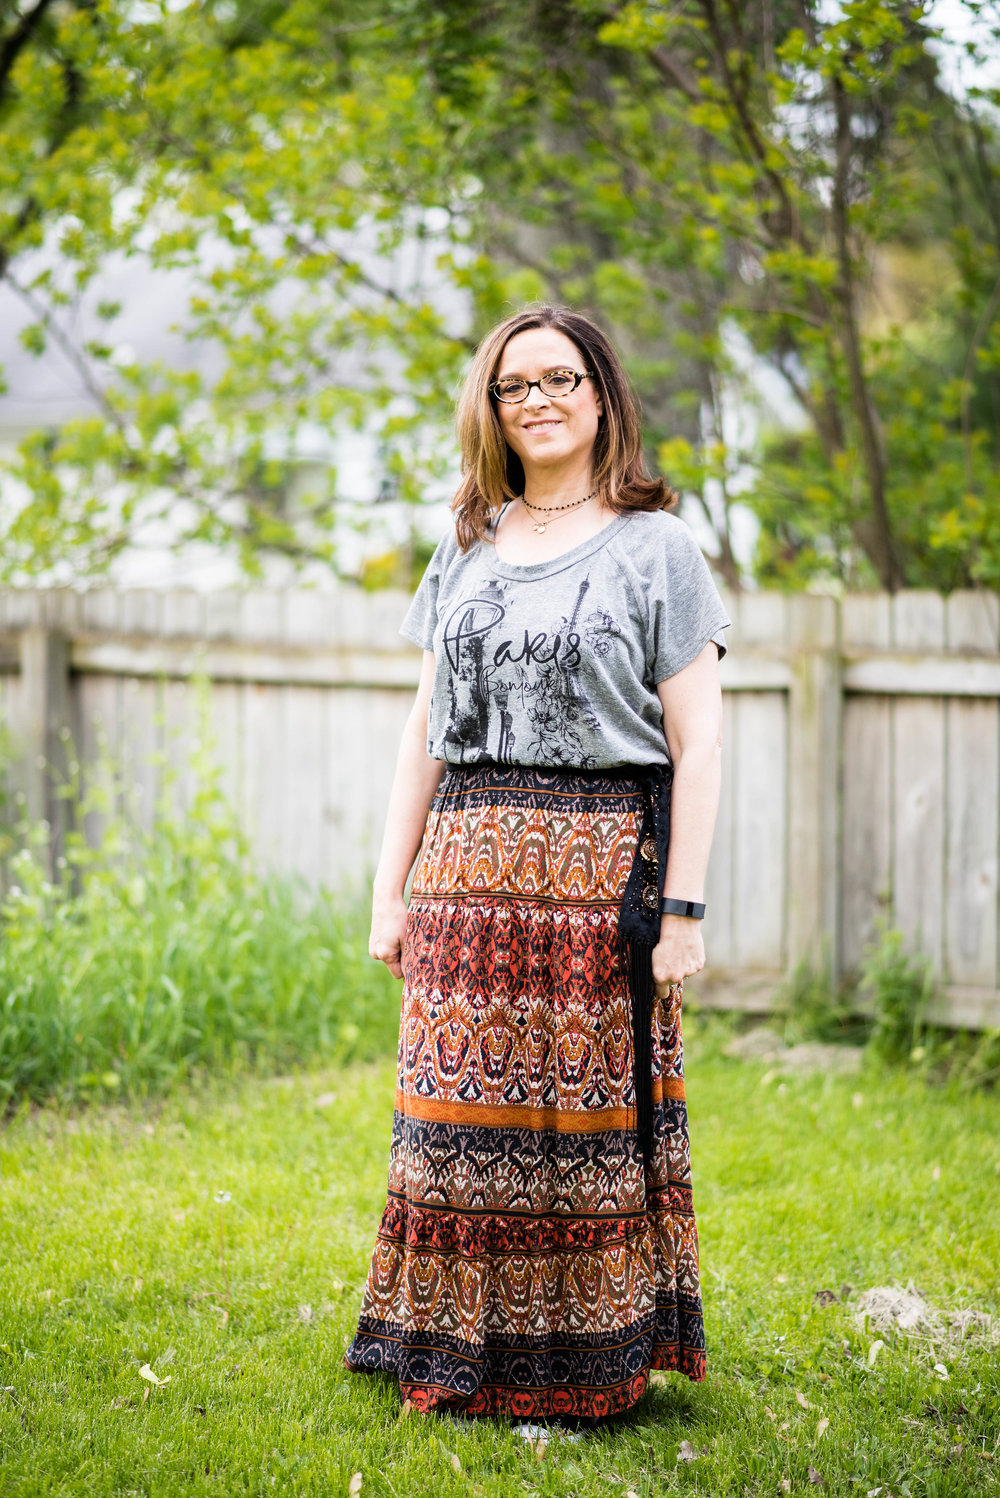 Beautiful Blogger Bests - Graphic tee with boho skirt